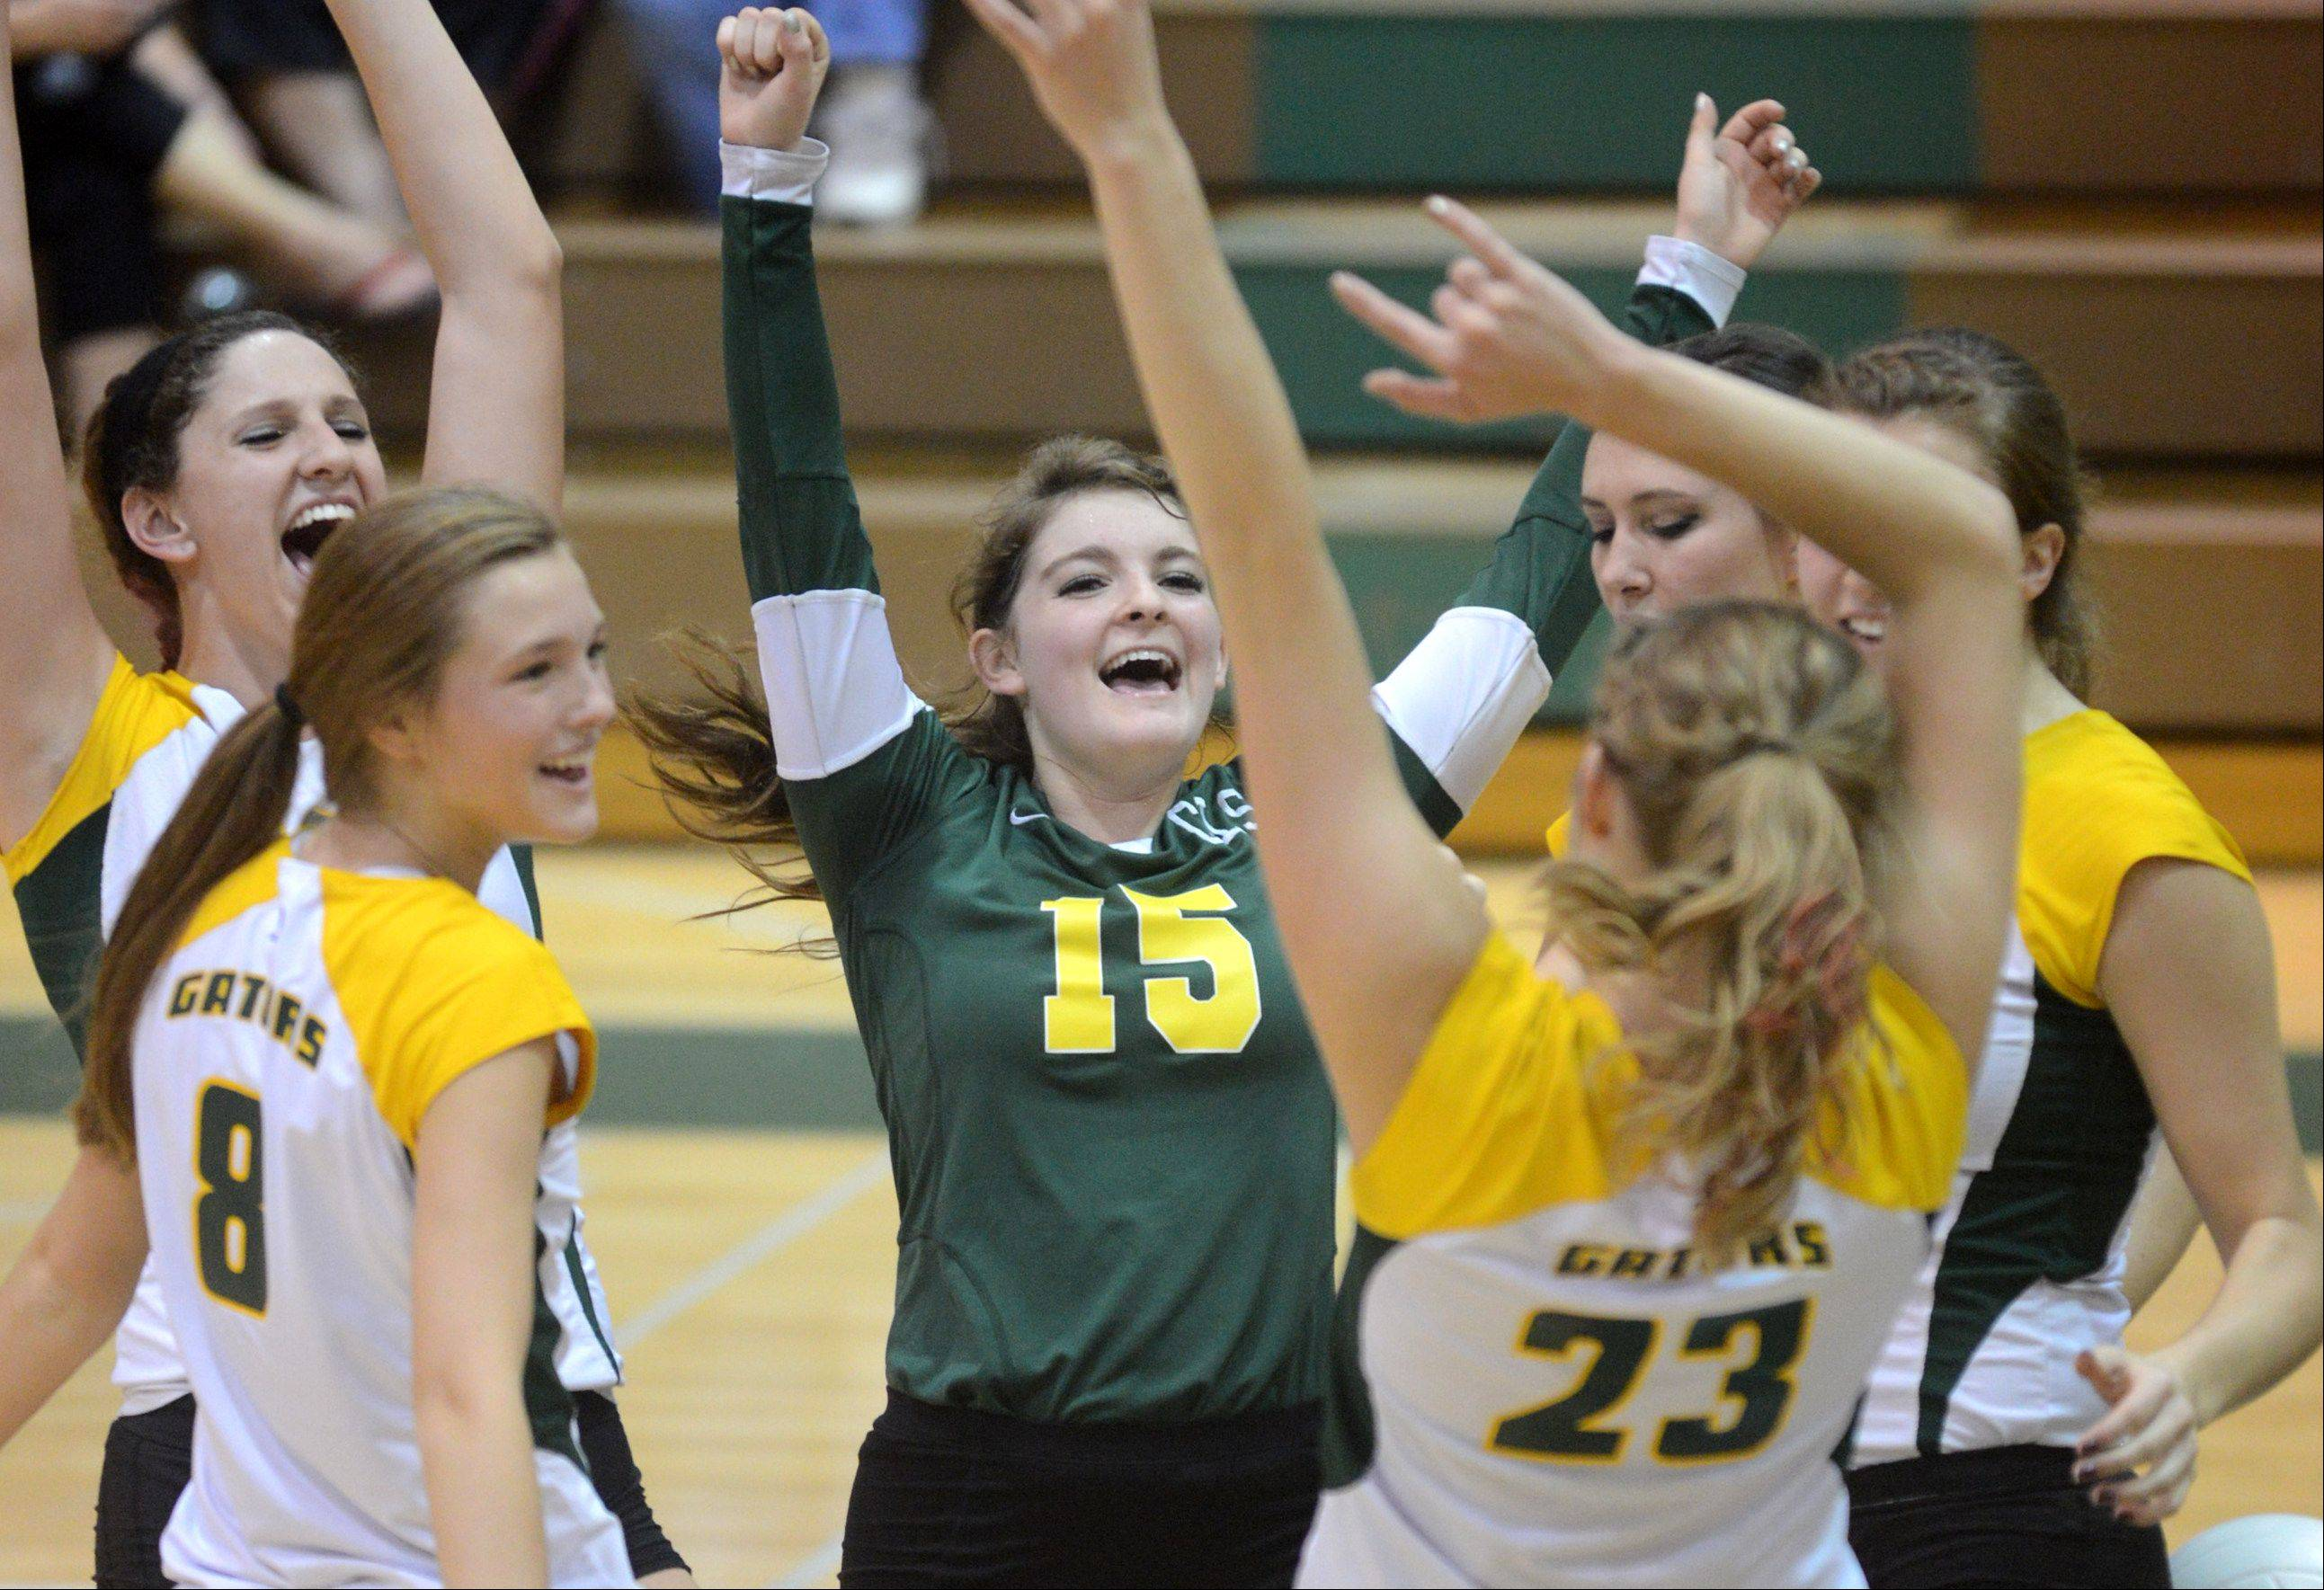 Crystal Lake South's Hannah Wilson, center, is fired up during Thursday's volleyball match against Huntley in Crystal Lake.